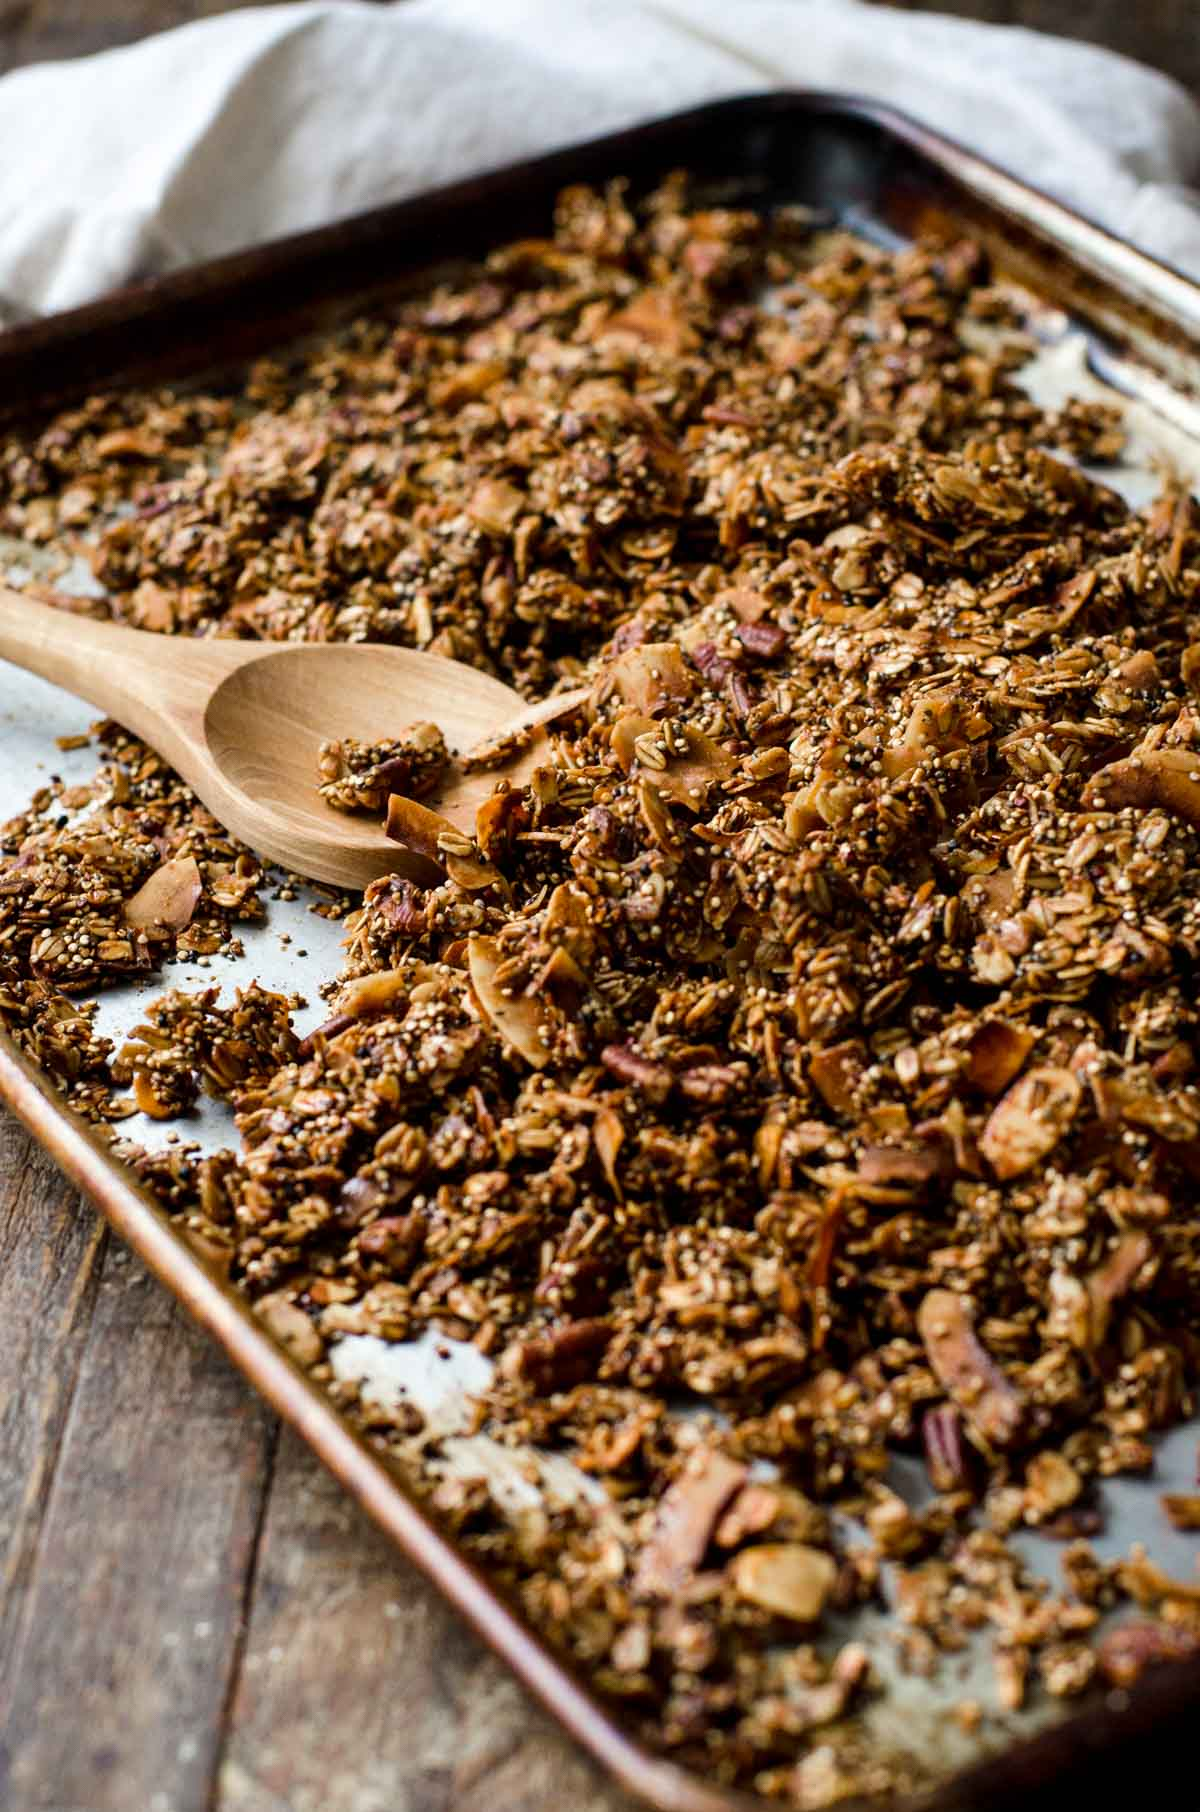 A wooden spoon scraping homemade granola into clusters.